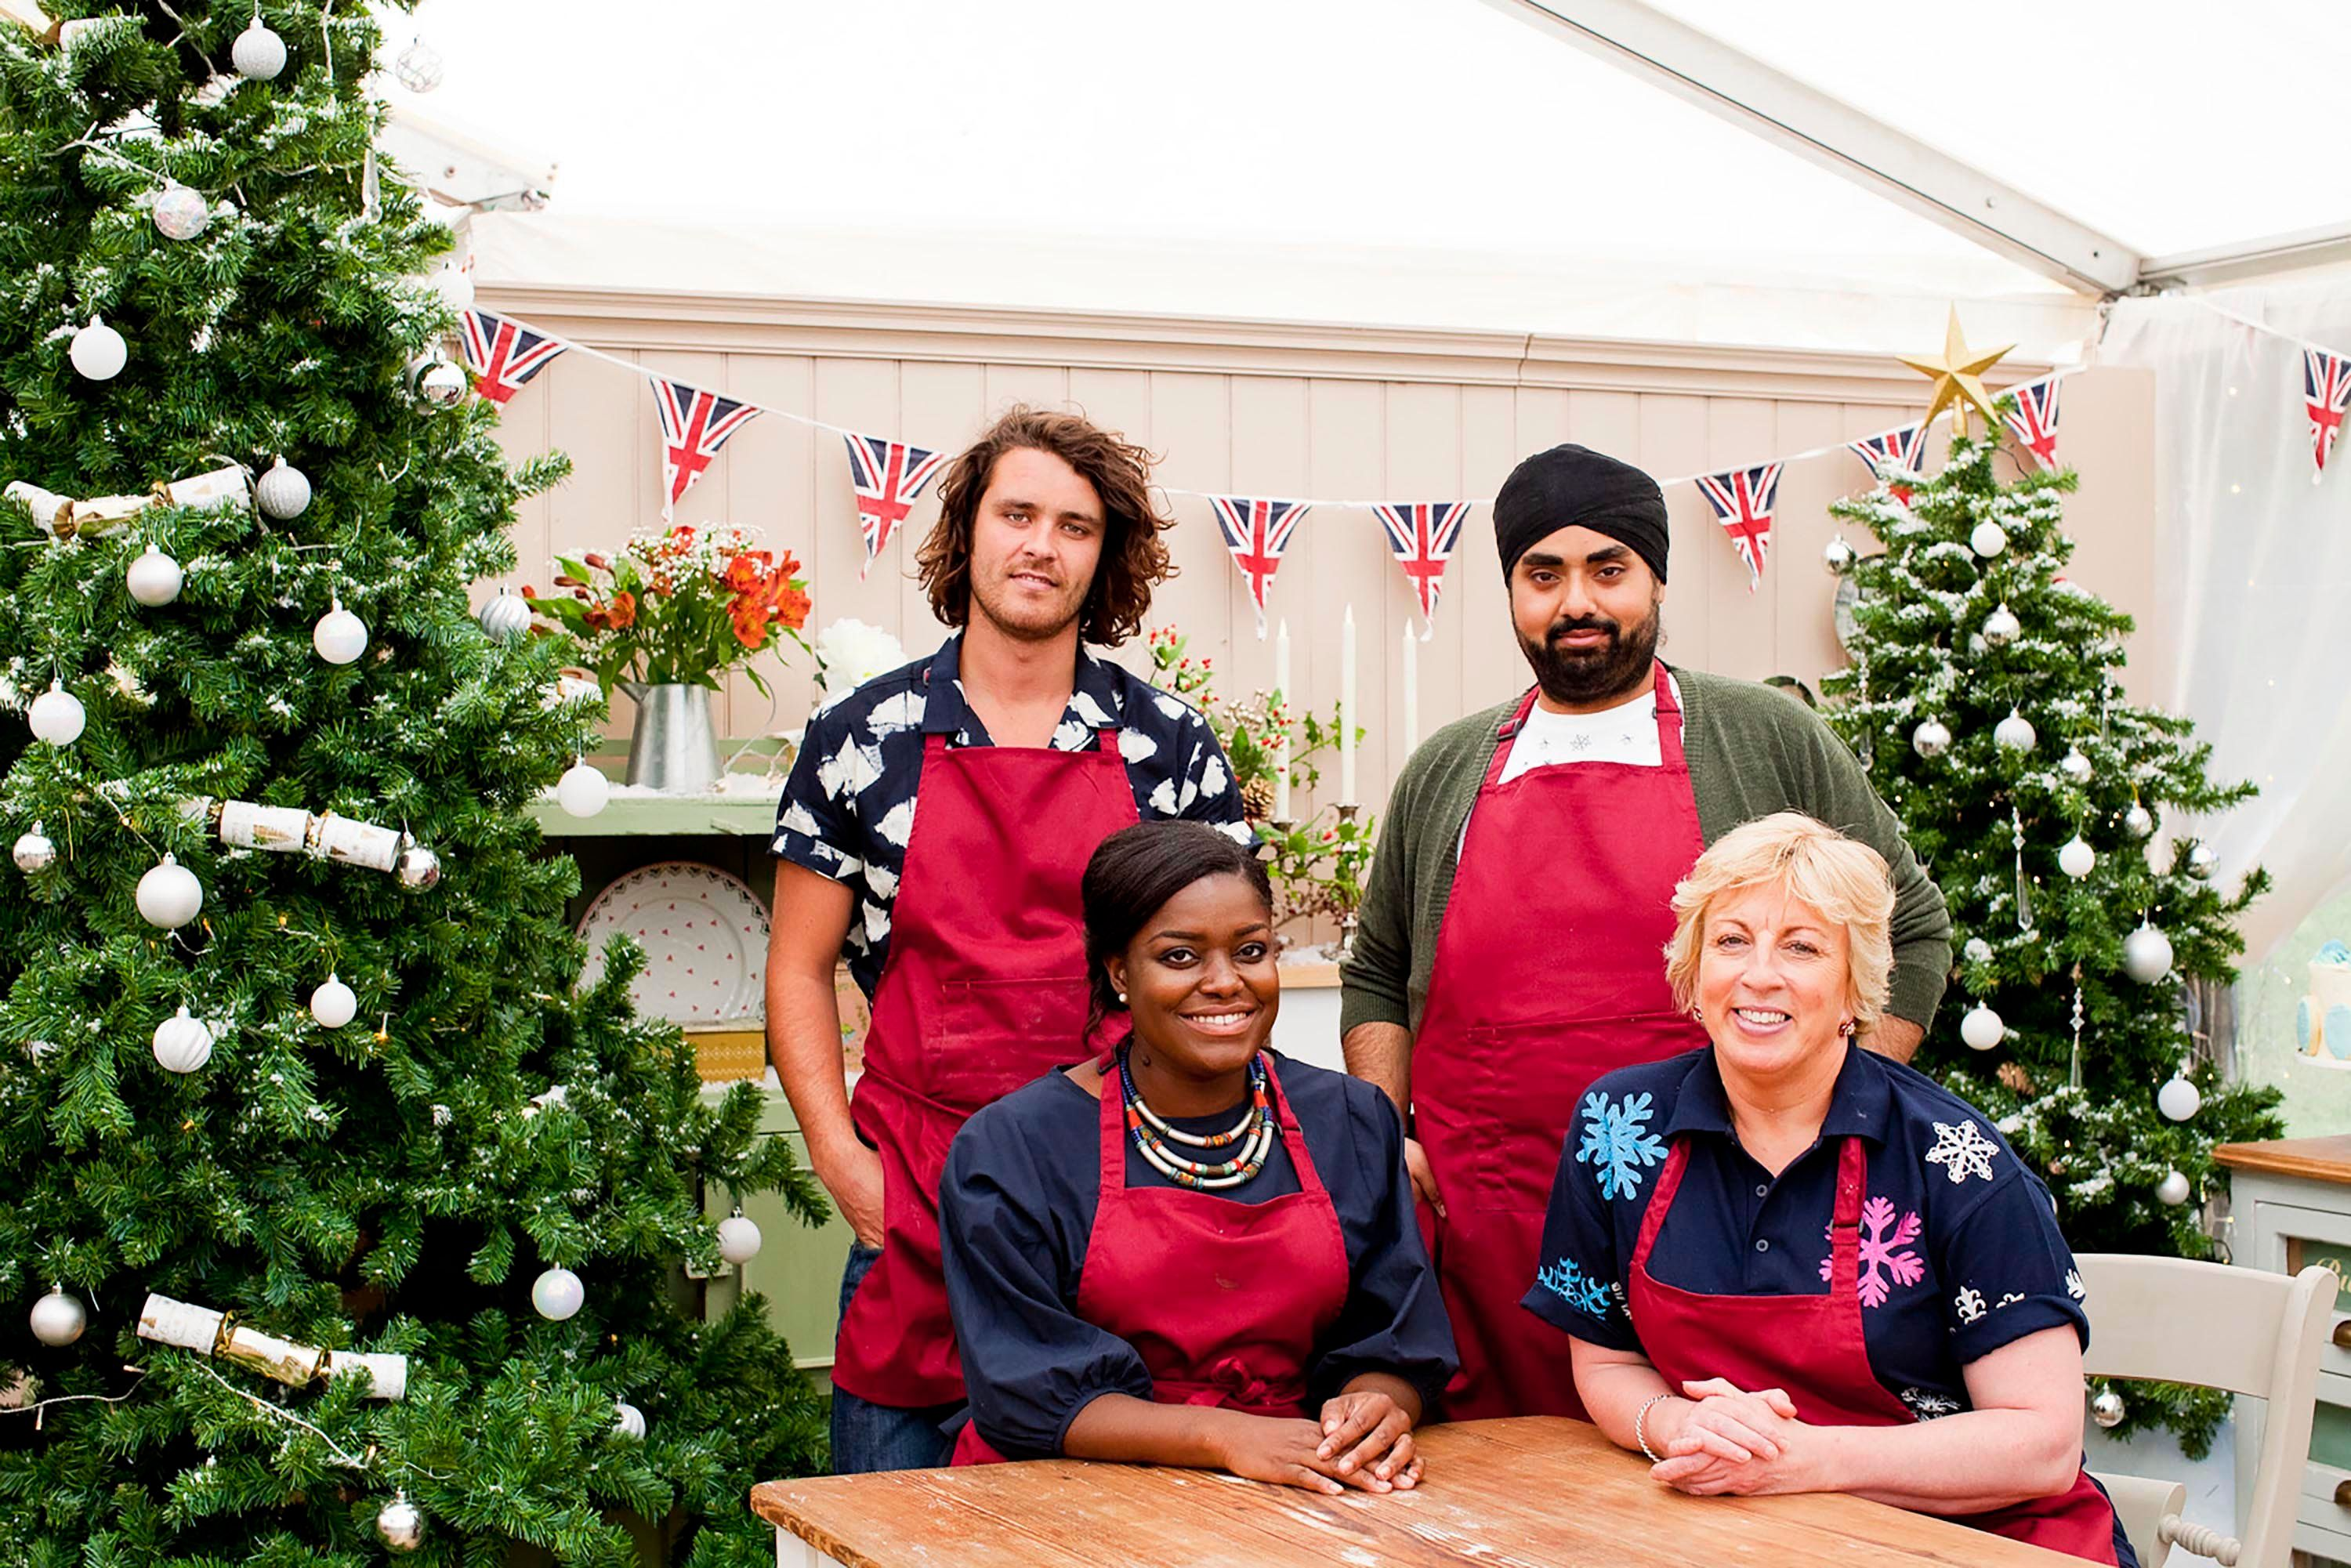 Baked Alaska Returned To 'Bake Off' And It Was Too Much For Viewers After 2014's #BinGate